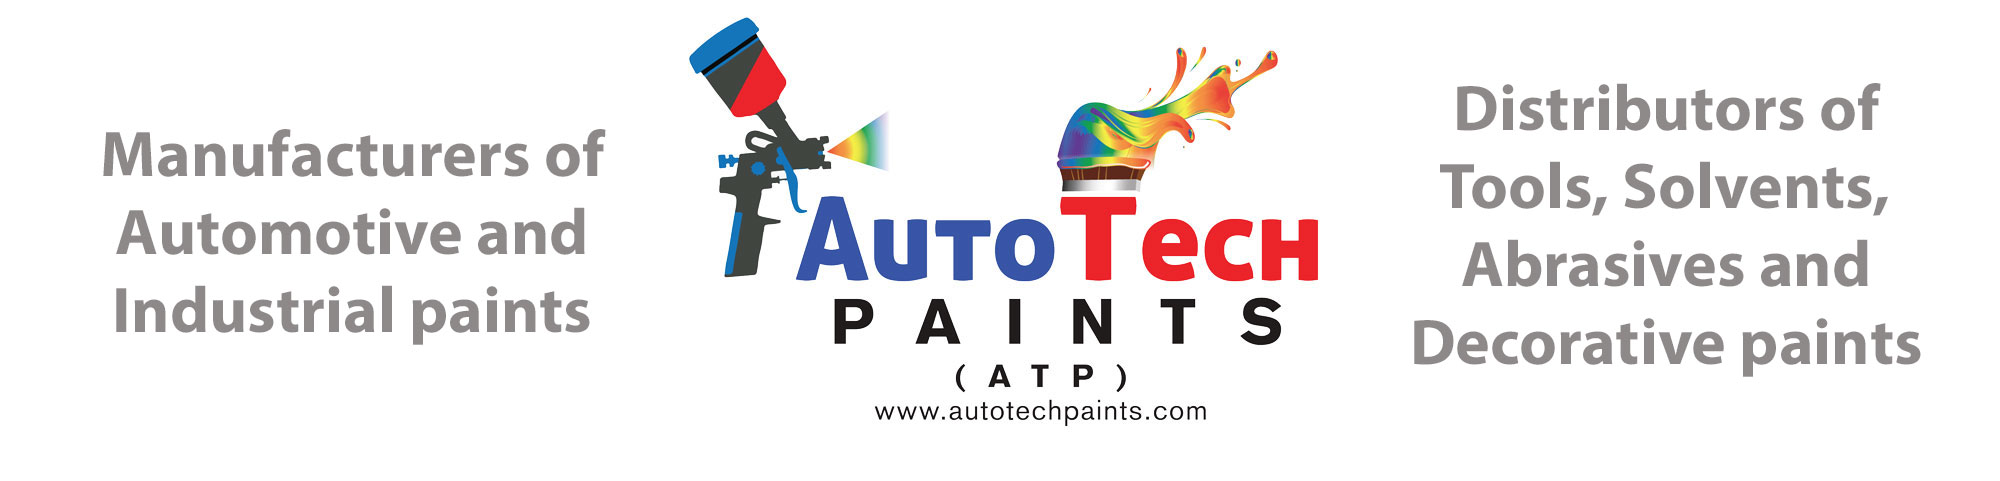 Auto Tech Paints